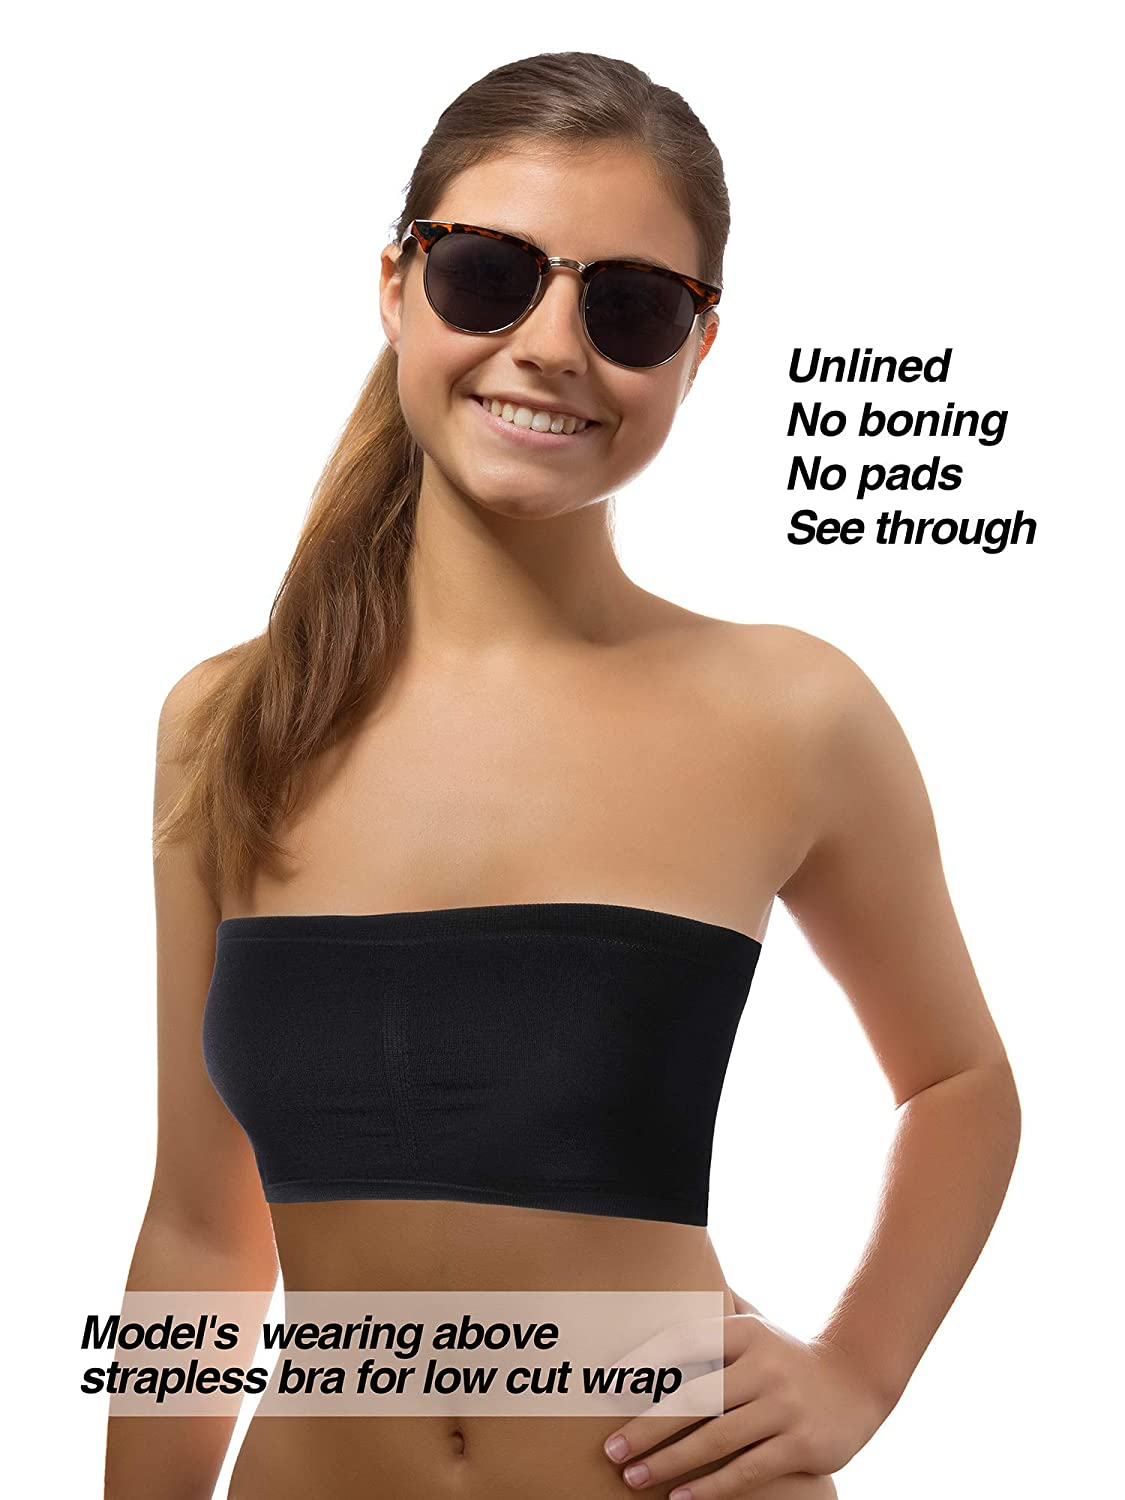 2a4b9ed415d4a Blulu 3 Pieces Strapless Bandeau Bralette Crop Tube Bra Stretchy Non-Padded  Bandeau for Women Girls, Assorted Sizes, 3 Colors at Amazon Women's  Clothing ...